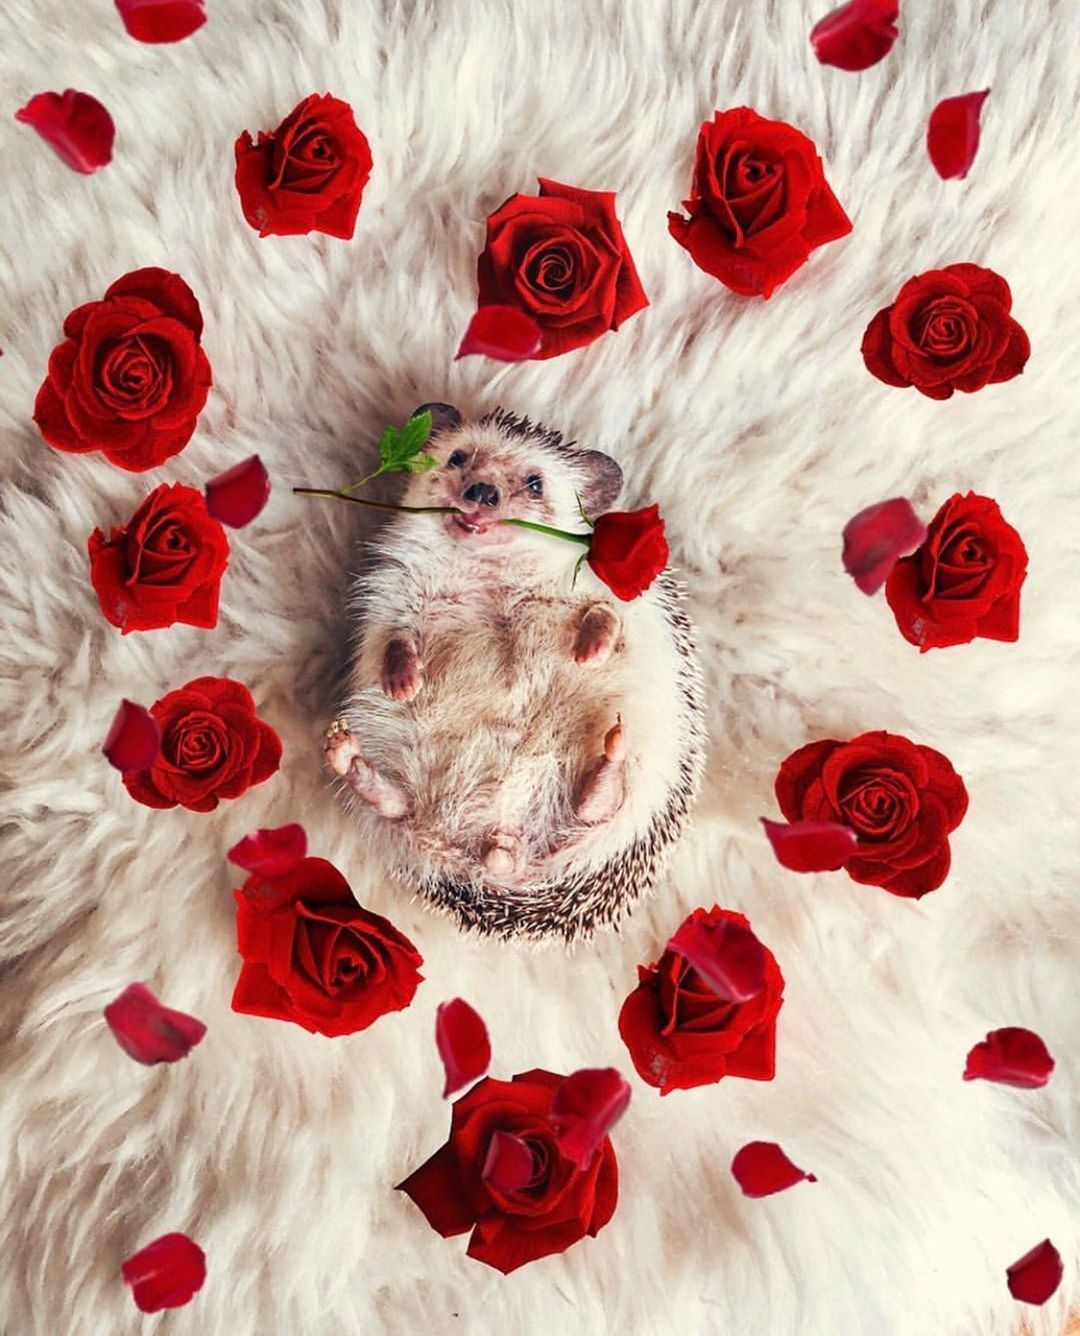 Will you accept this rose? 📸: @mr.pokee🌹#photography #photographylovers #photographysouls #photographyeveryday #hedgehog #hedgie #hedgephotos #valentinesday #mymodernmet